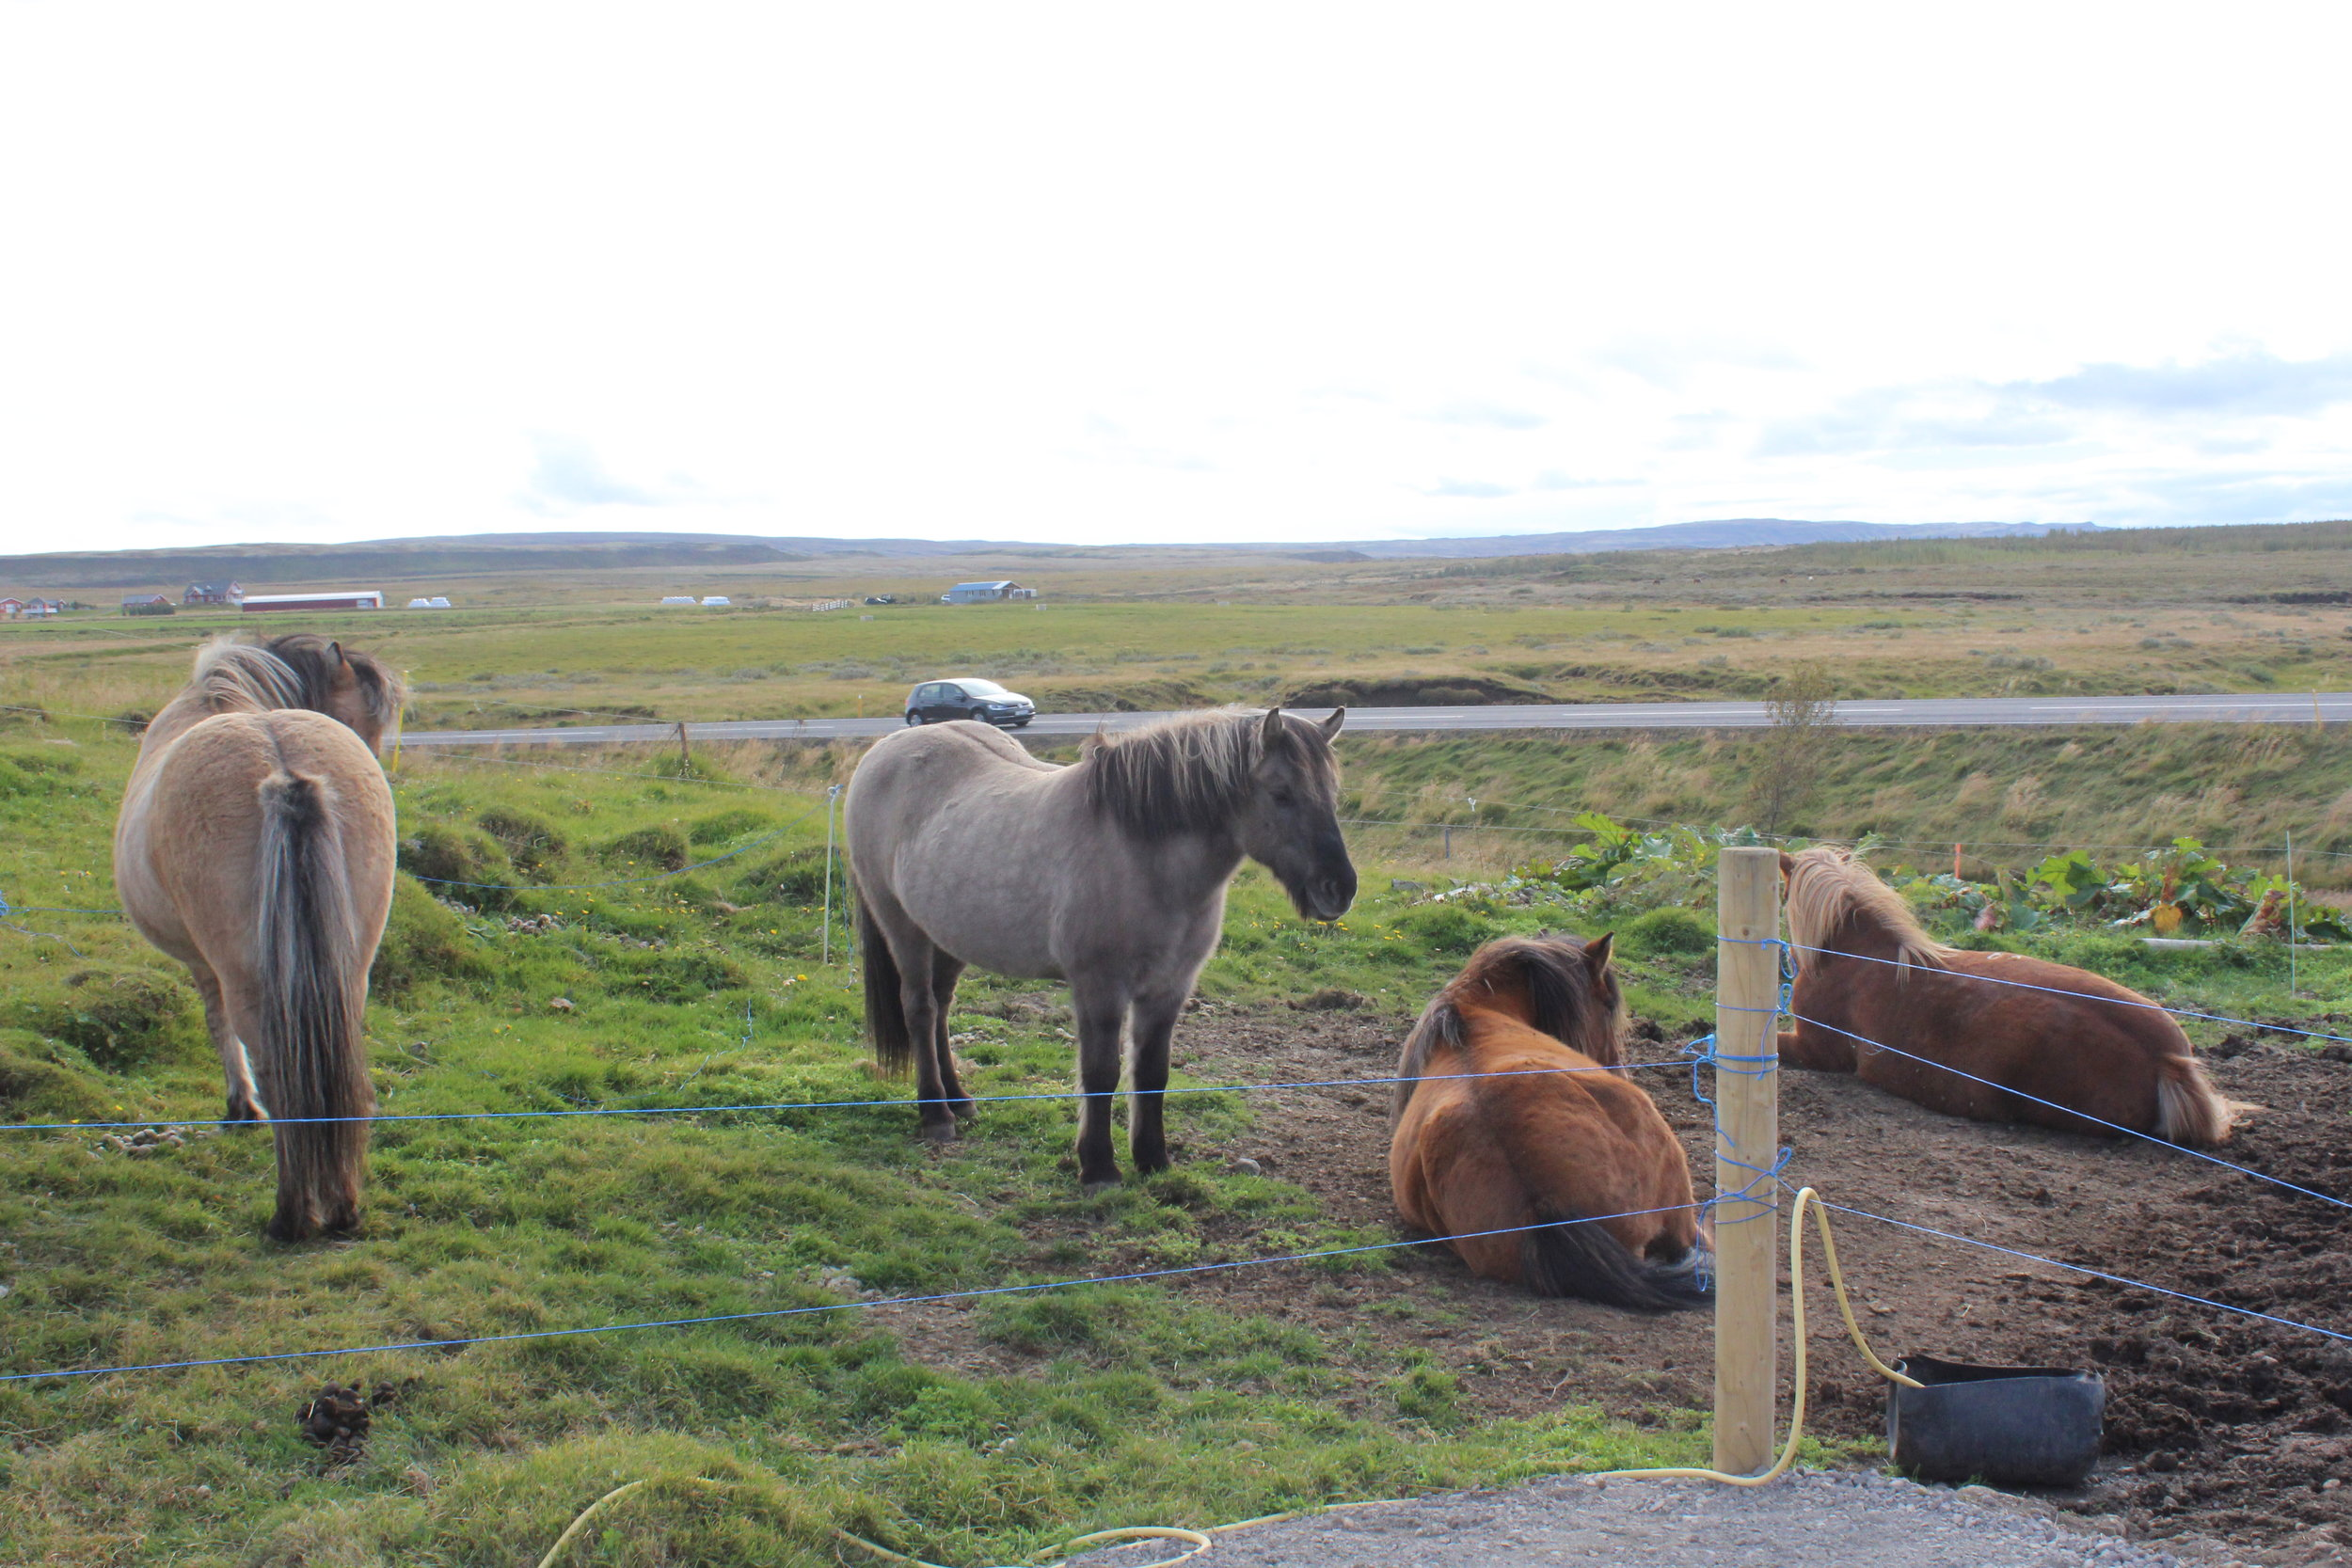 - Here's a quick stop at a small farm to pet some (and take selfies with) Icelandic horses, a breed unique to Iceland. They have a thick coat of hair necessary for Iceland's harsh weather, and are smaller than your typical horse breed.